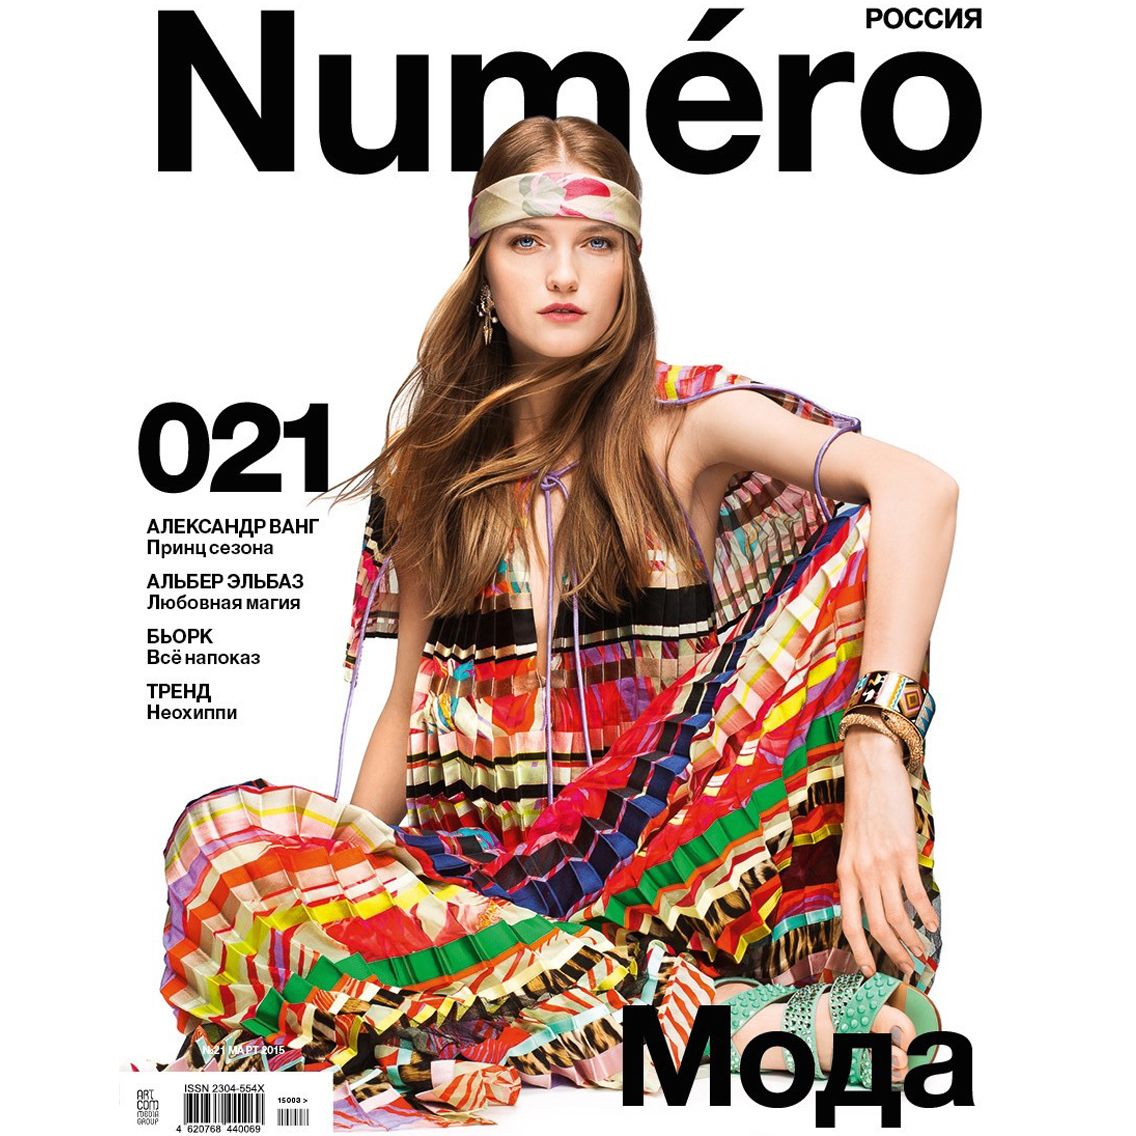 Amazing cover shot in Numero, March 2015, featuring the russian top model Vlada Roslyakova in a colorful #RobertoCavalliSS15 dress.